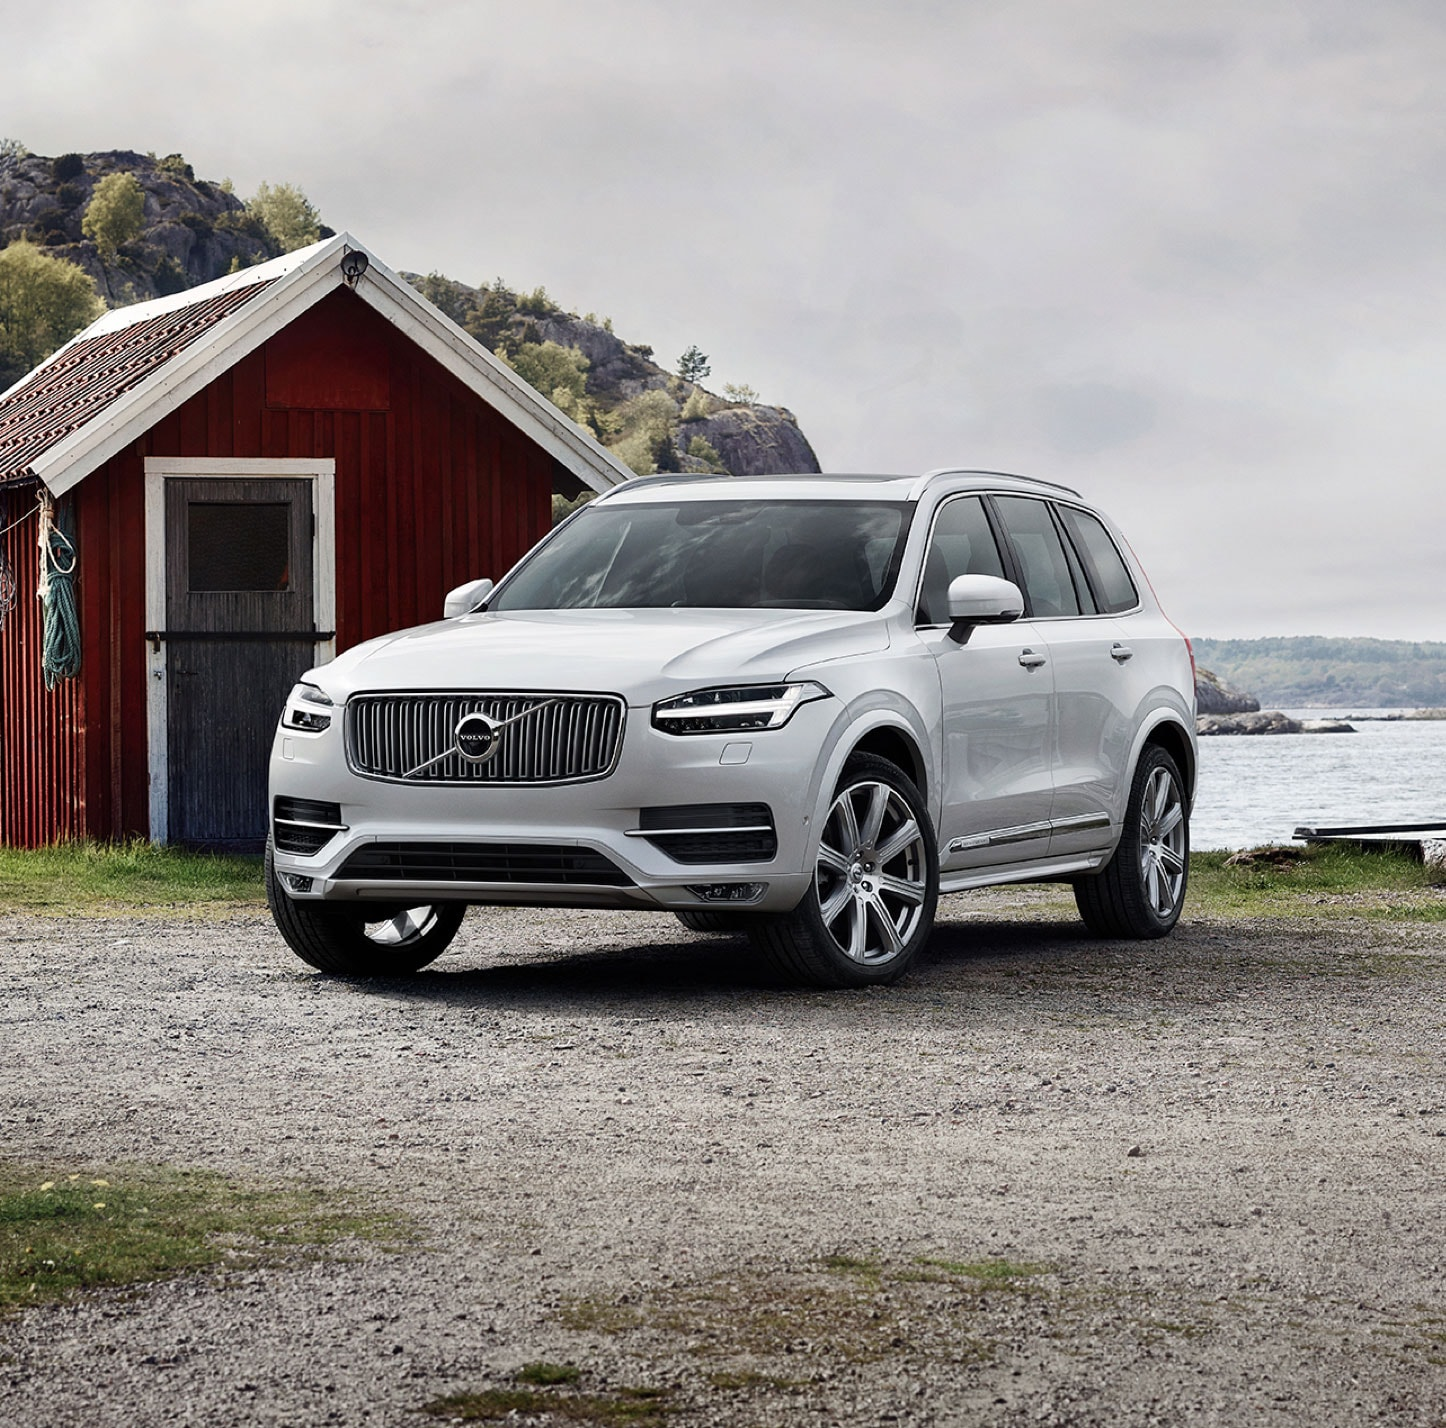 2019 Volvo V90 Cross Country: Volvo Cars Annapolis In Annapolis, MD